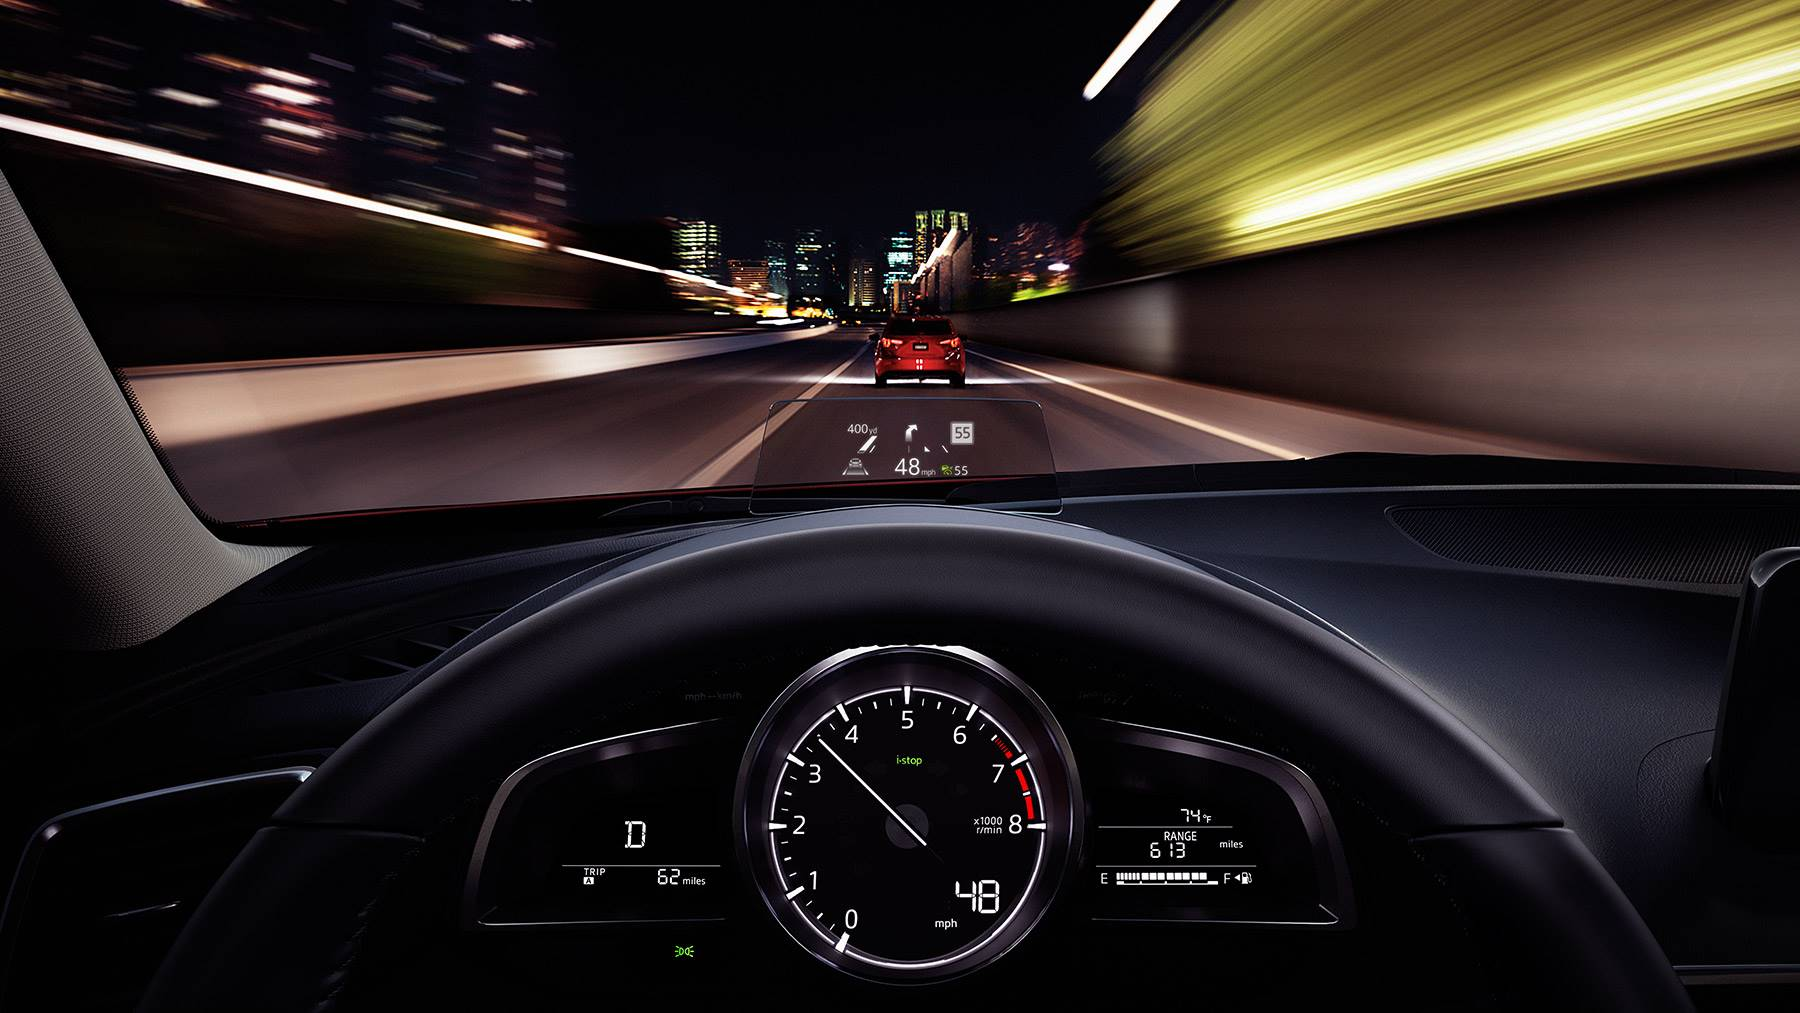 Enjoy the Journey in the 2018 Mazda3